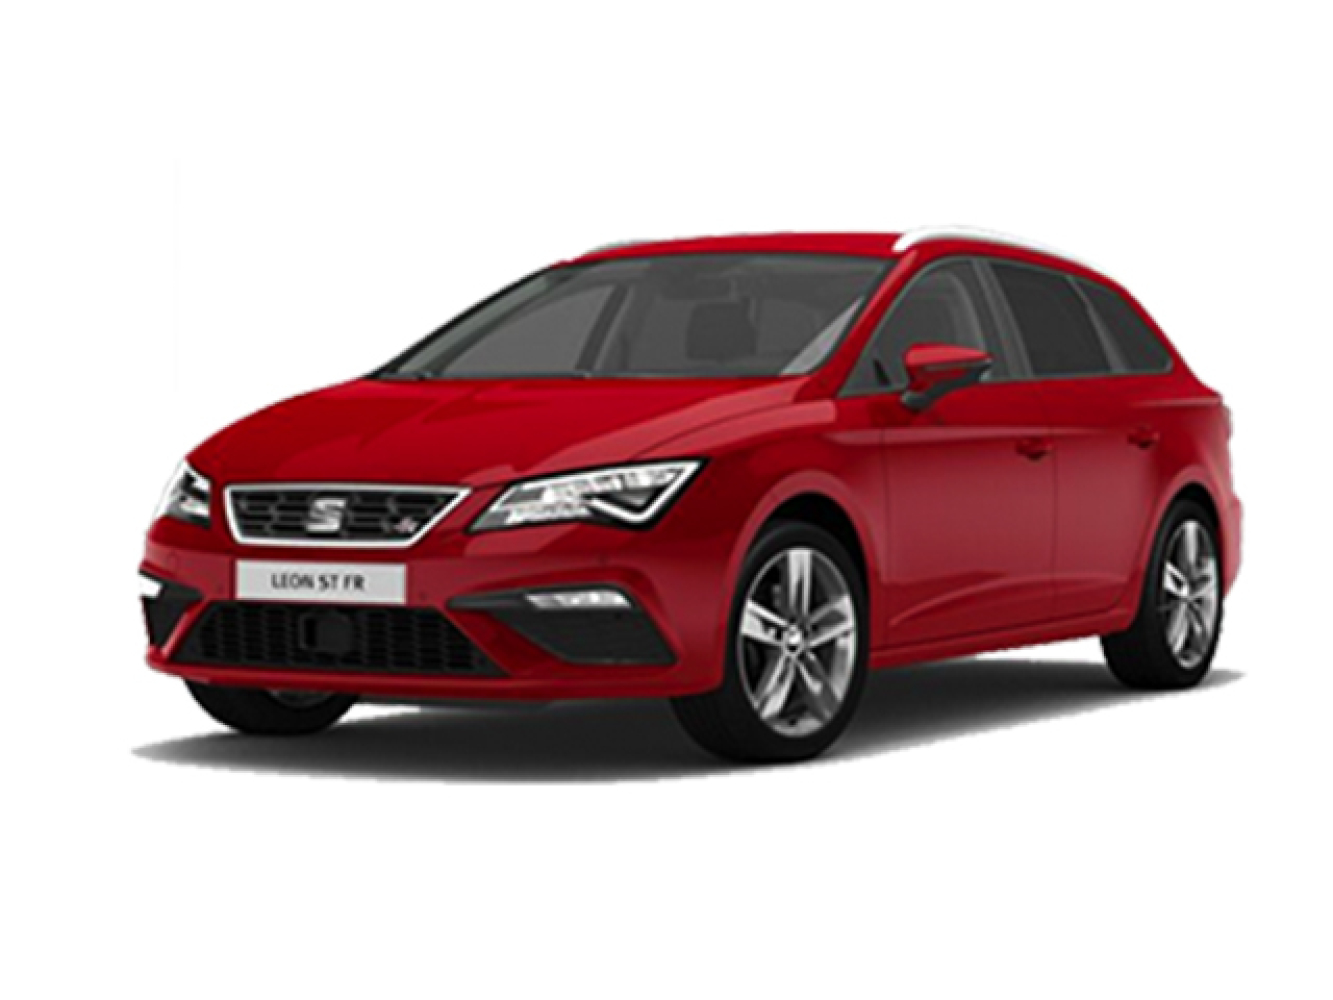 new seat leon 2 0 tsi 190 fr ez 5dr dsg petrol estate. Black Bedroom Furniture Sets. Home Design Ideas